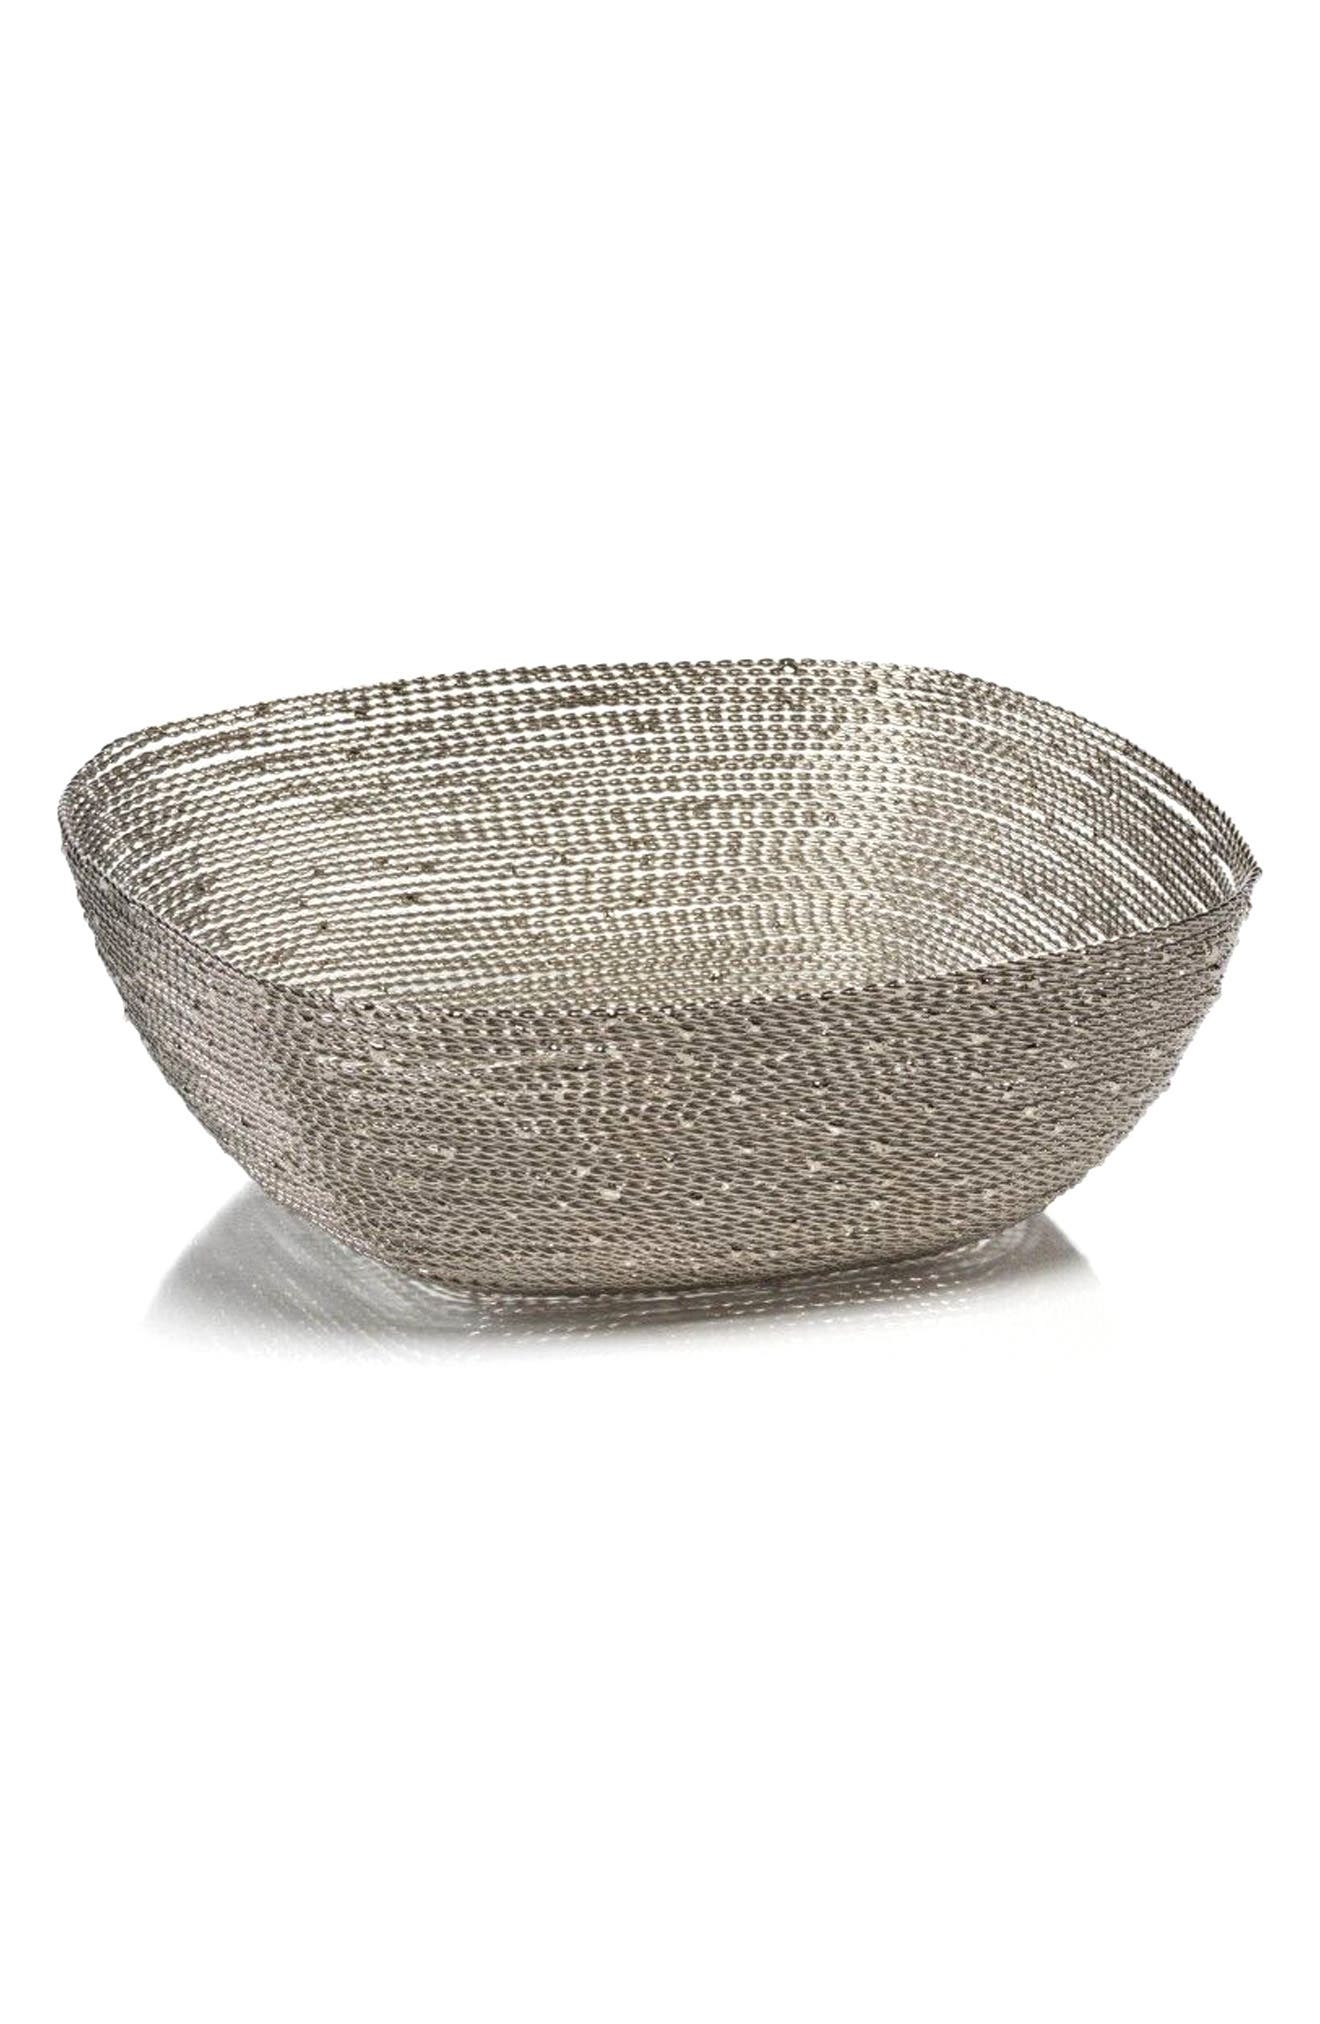 Zulu Small Square Woven Wire Basket,                             Main thumbnail 1, color,                             Silver